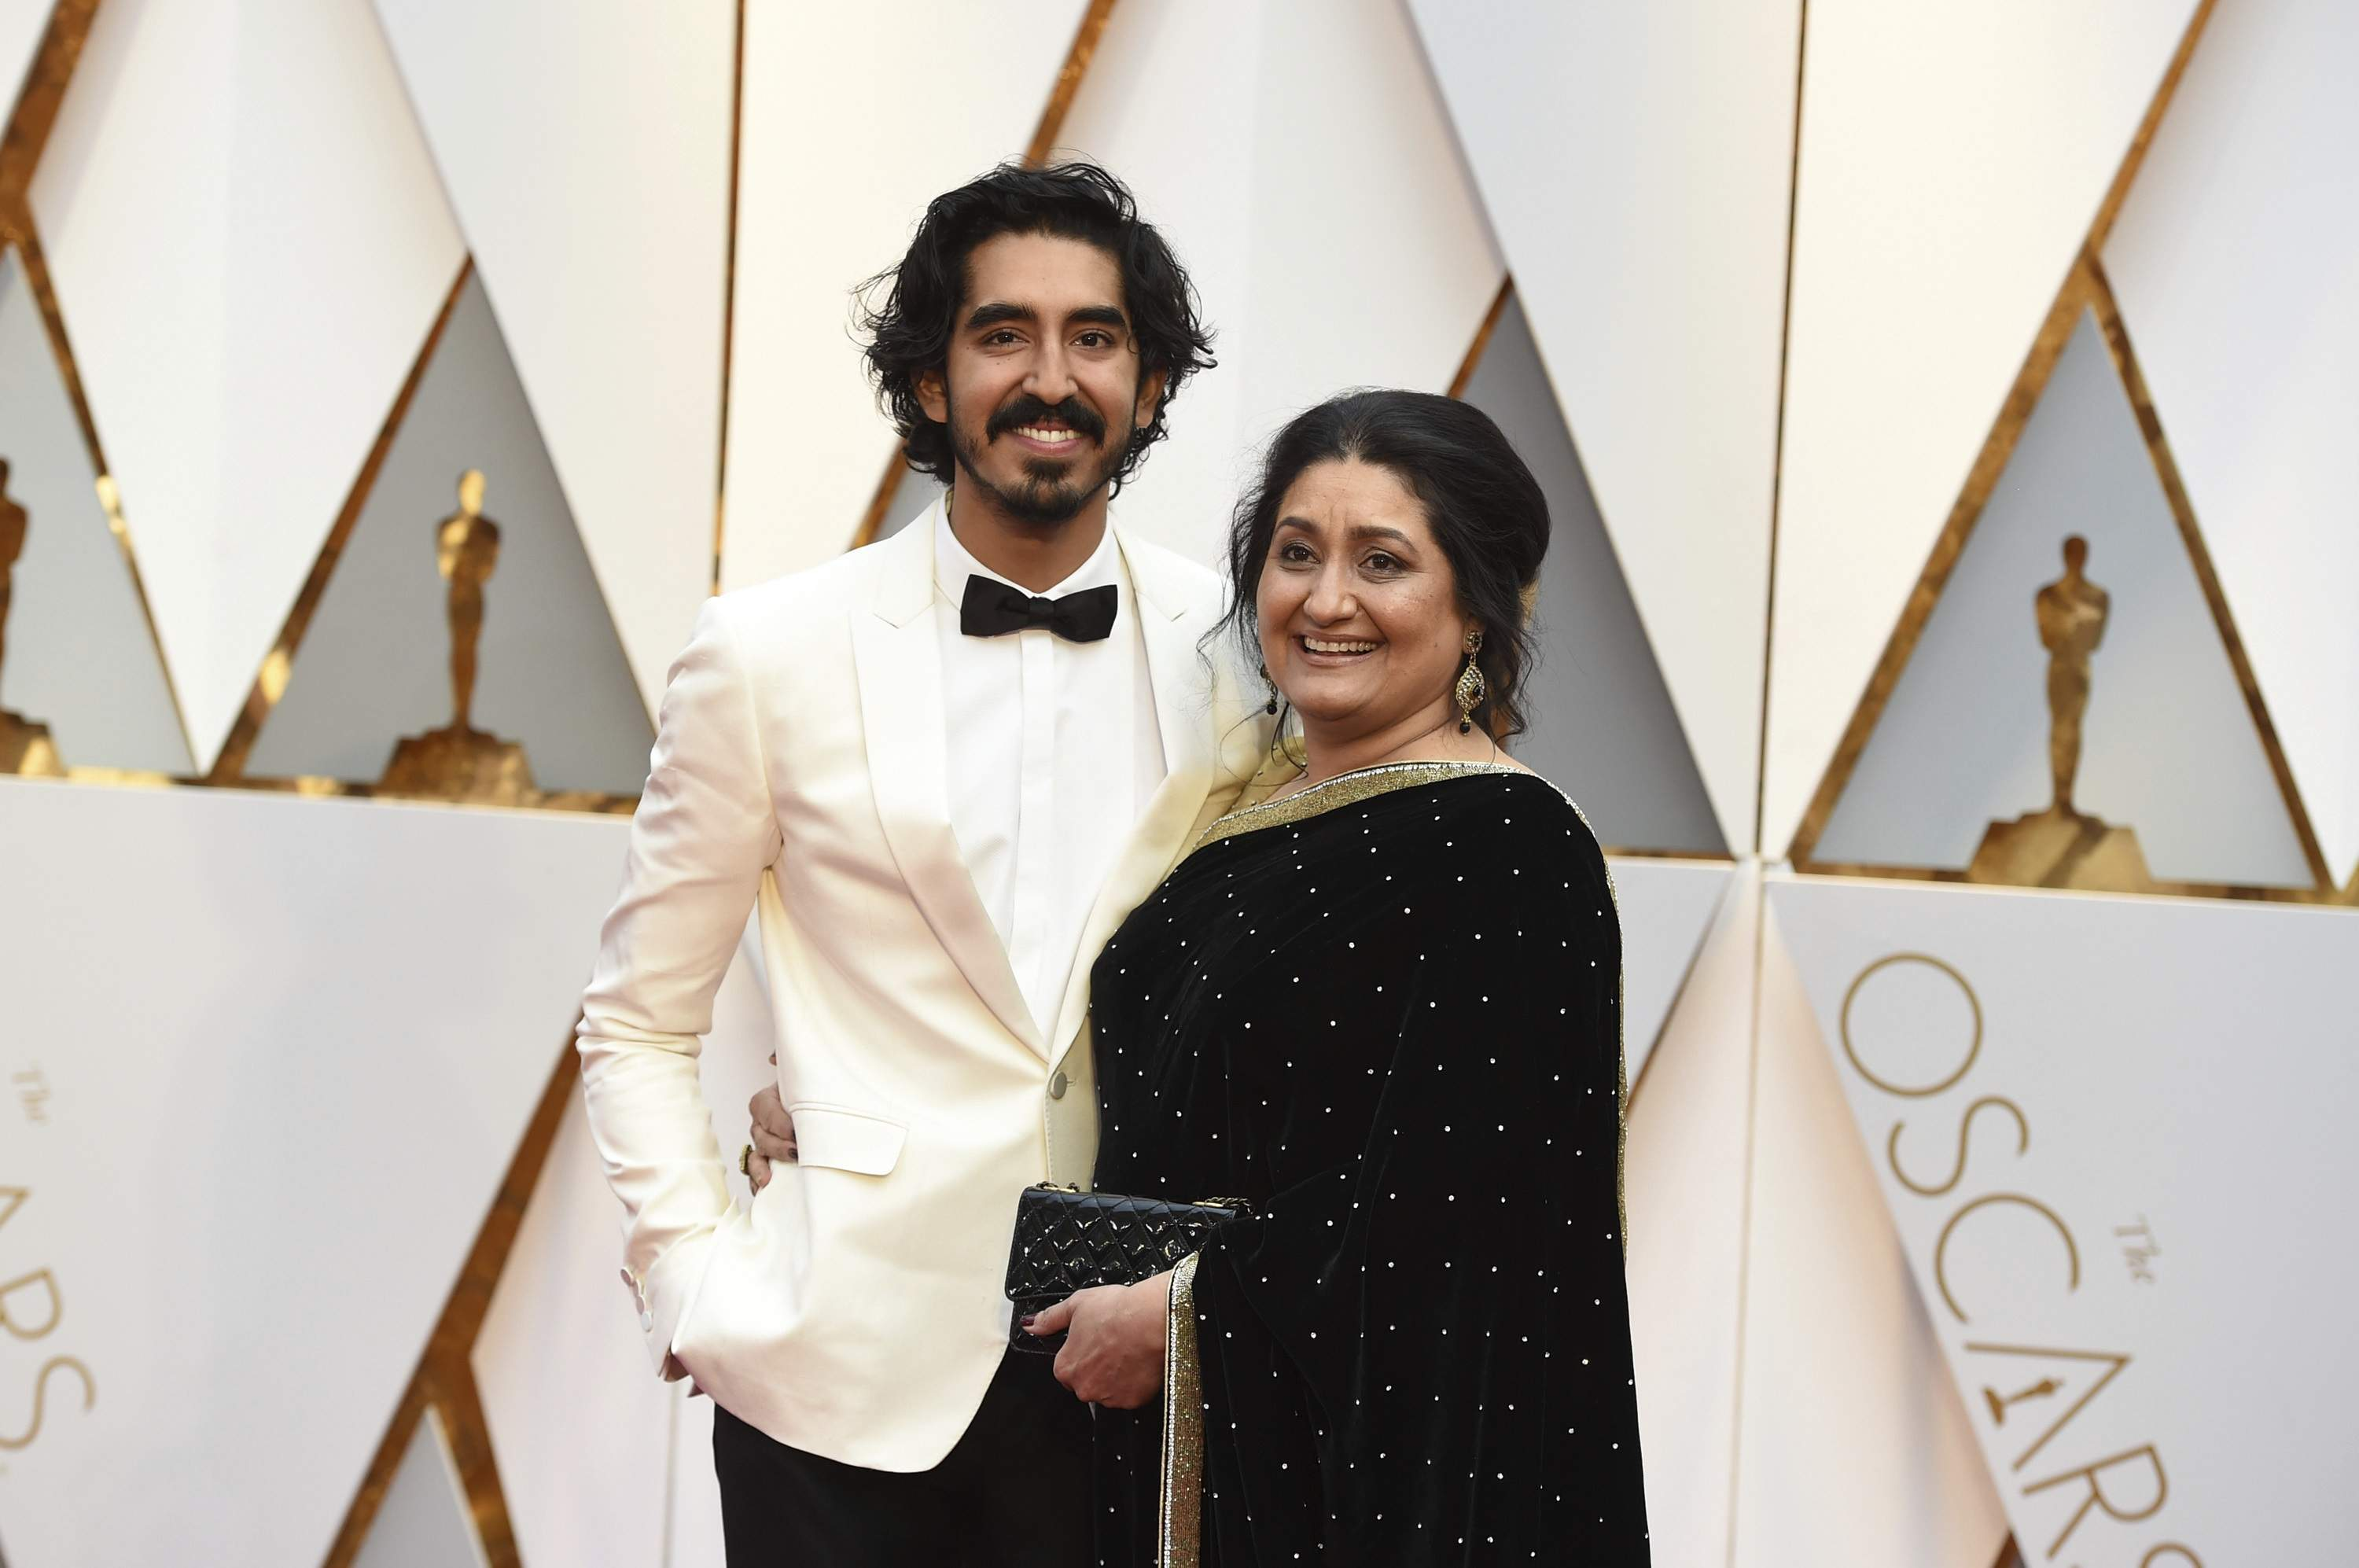 Dev Patel, left, and Anita Patel arrive at the Oscars on Sunday, Feb. 26, 2017, at the Dolby Theatre in Los Angeles. THE ASSOCIATED PRESS